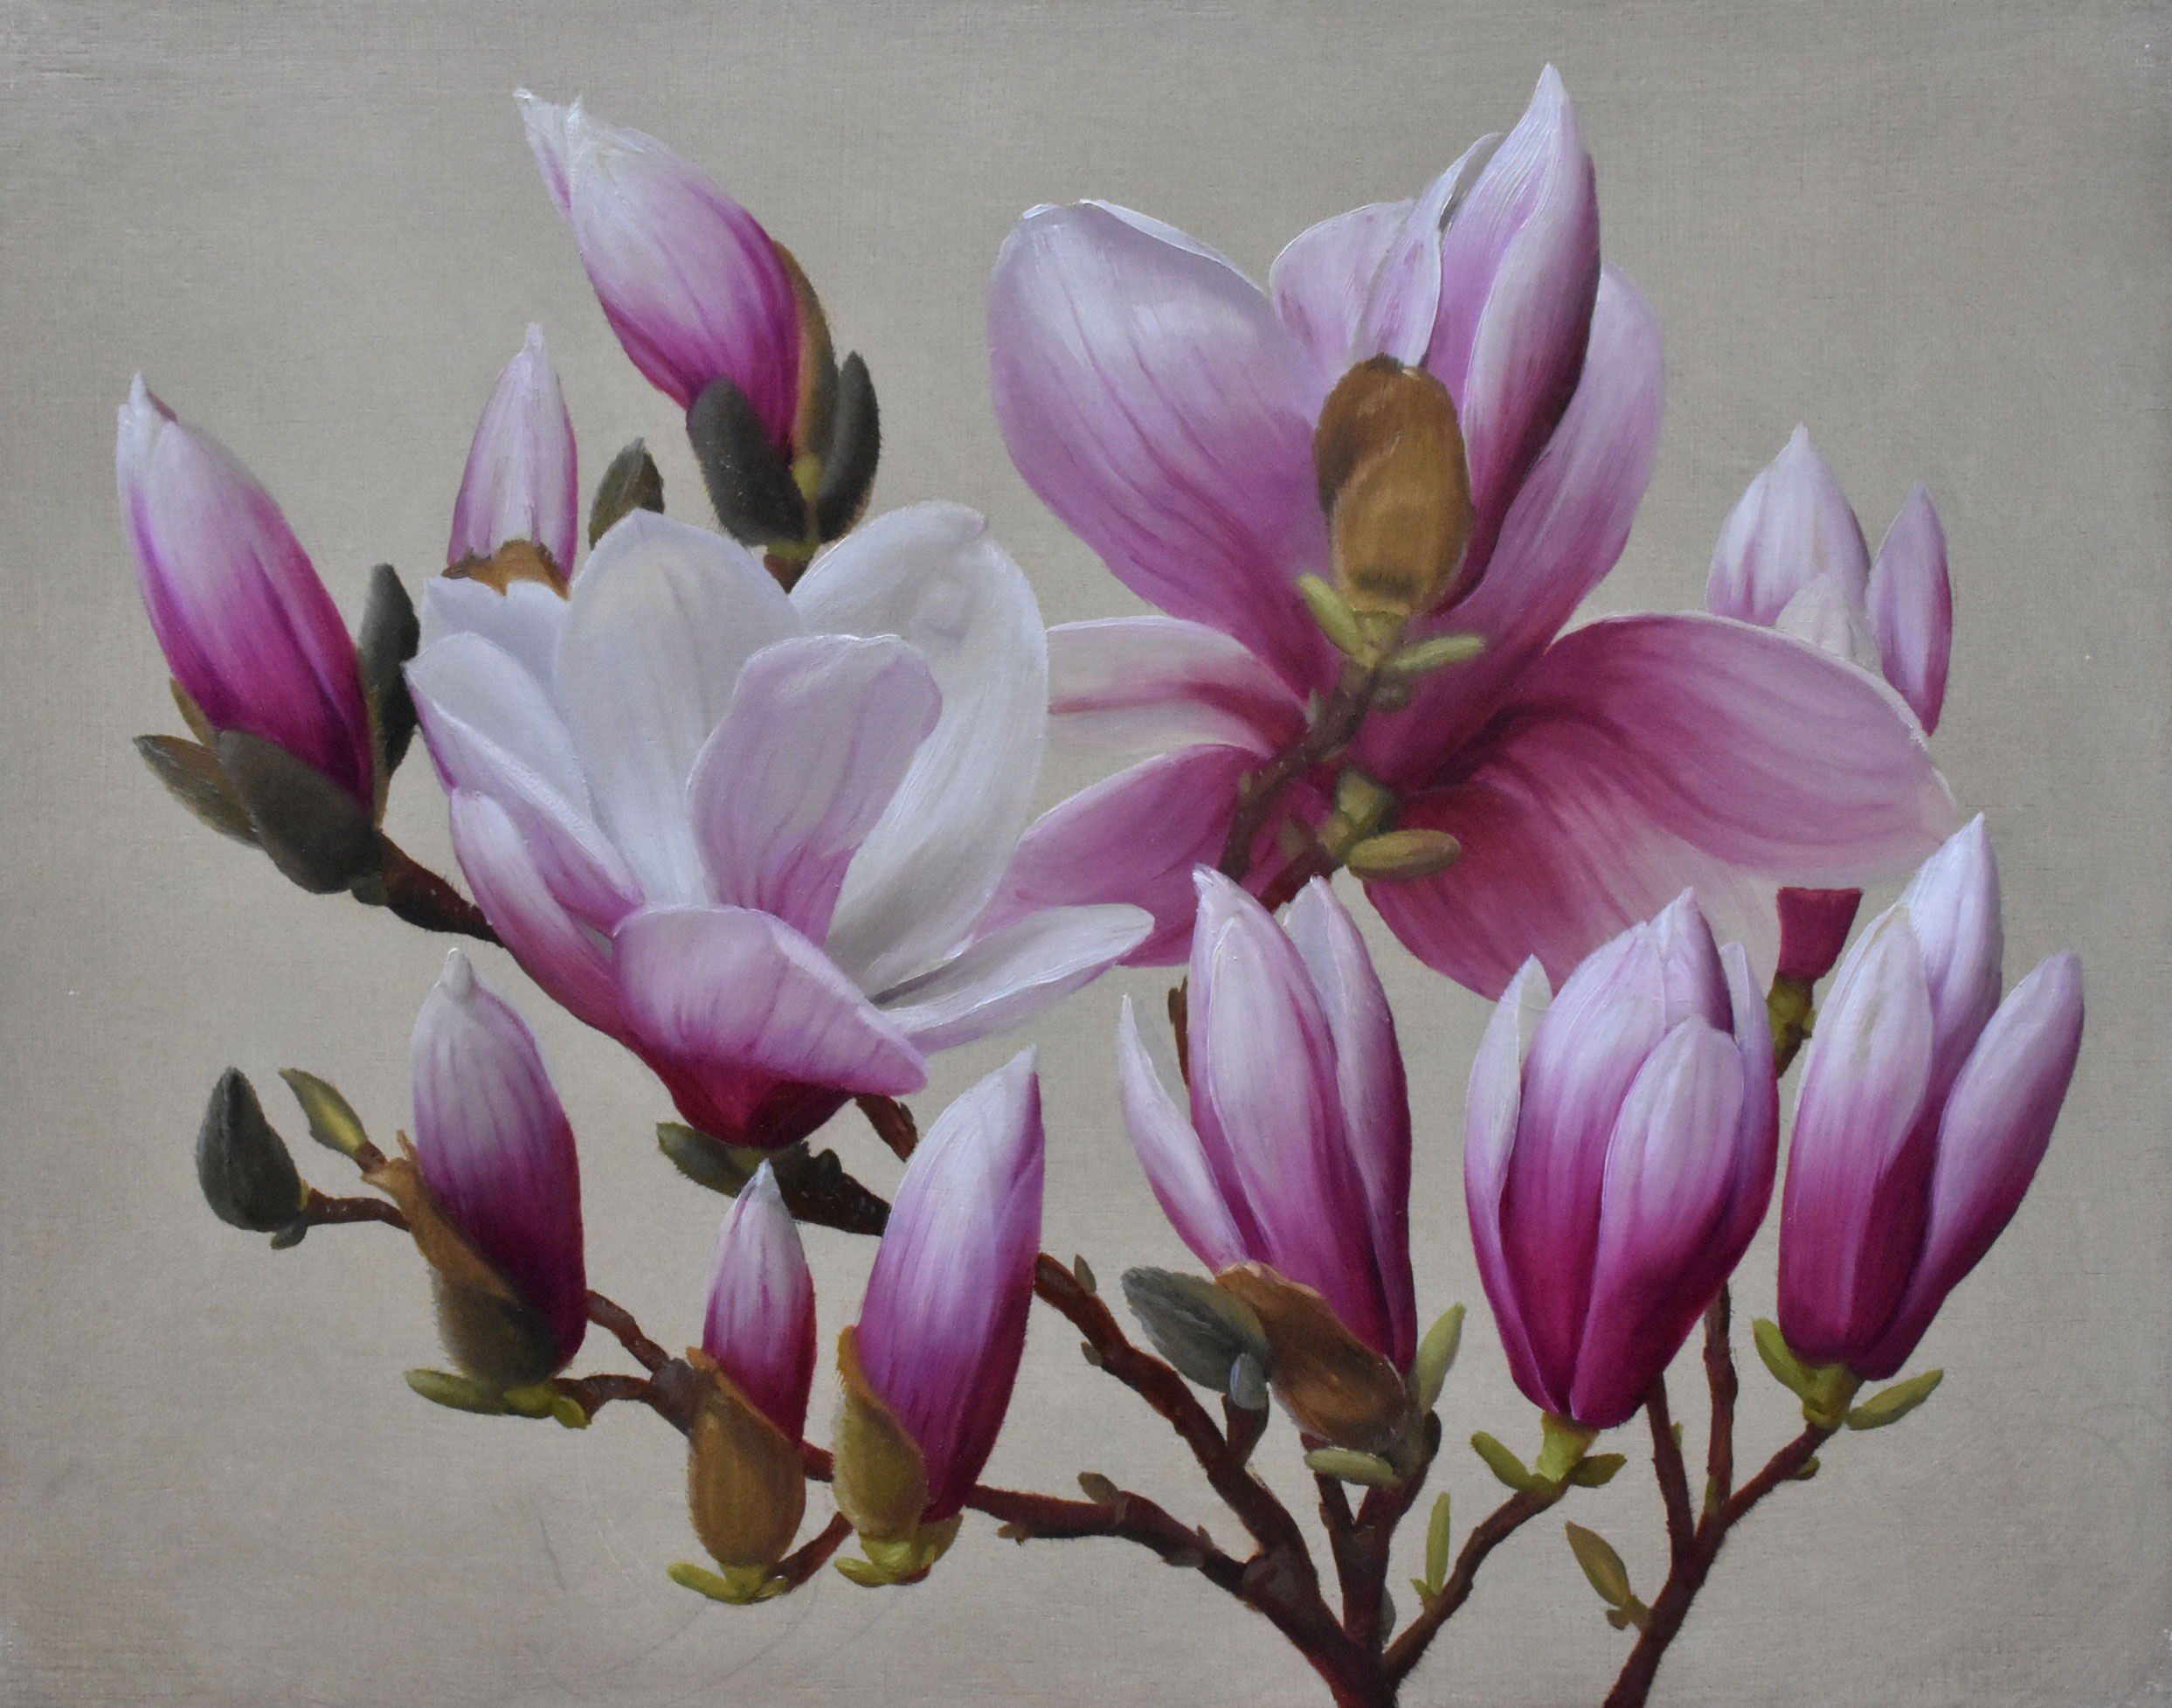 Johnston,-Brendan,-Blooming-Magnolias-III,-11__x14__,-Oil-on-Panel,-$1,400,